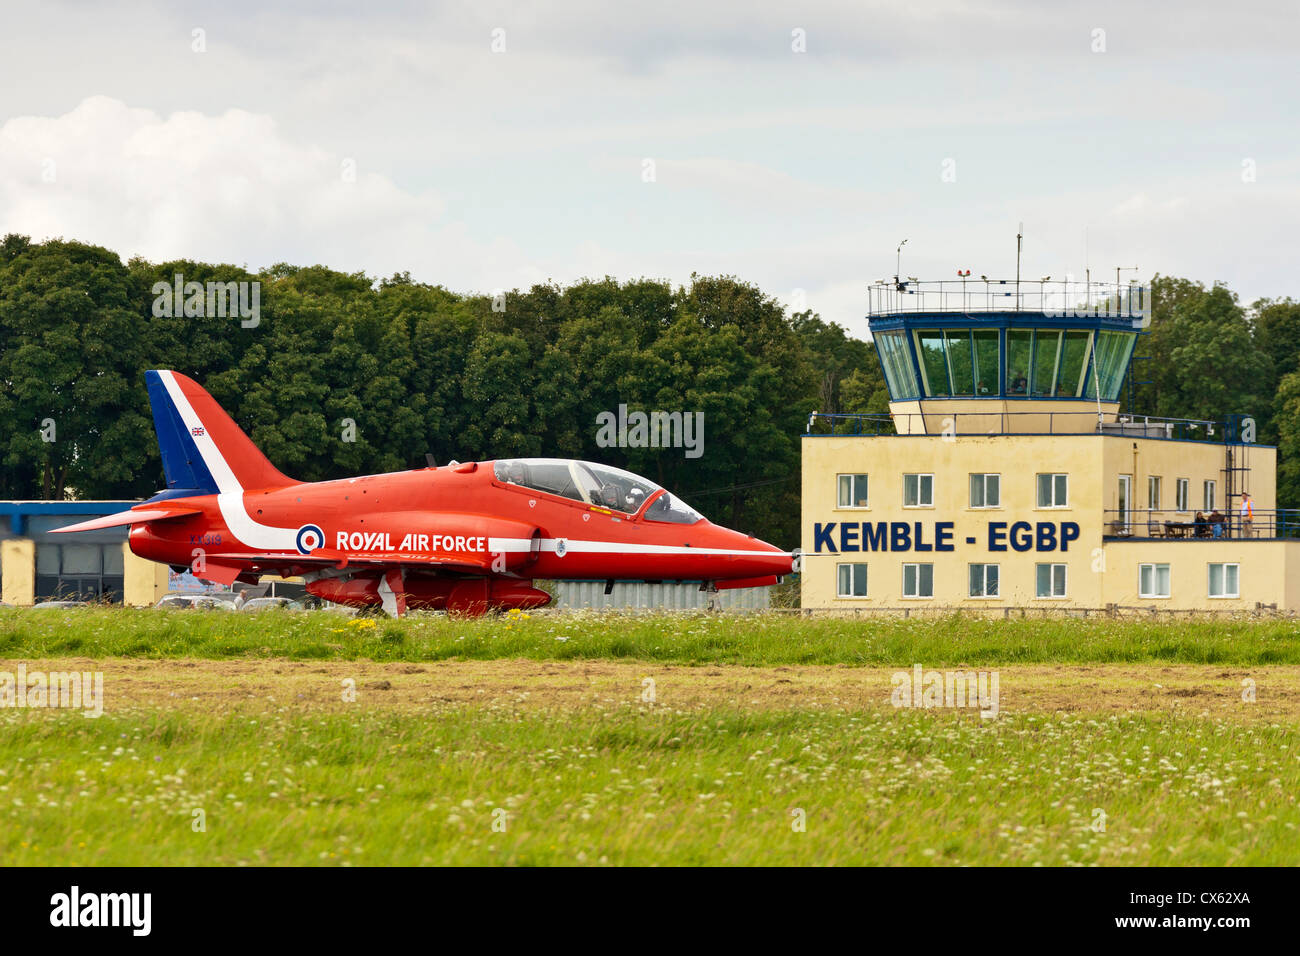 RAF Hawk Red Arrows display team aircraft on the runway passing the Kemble EGBP Control Tower. JMH6105 Stock Photo